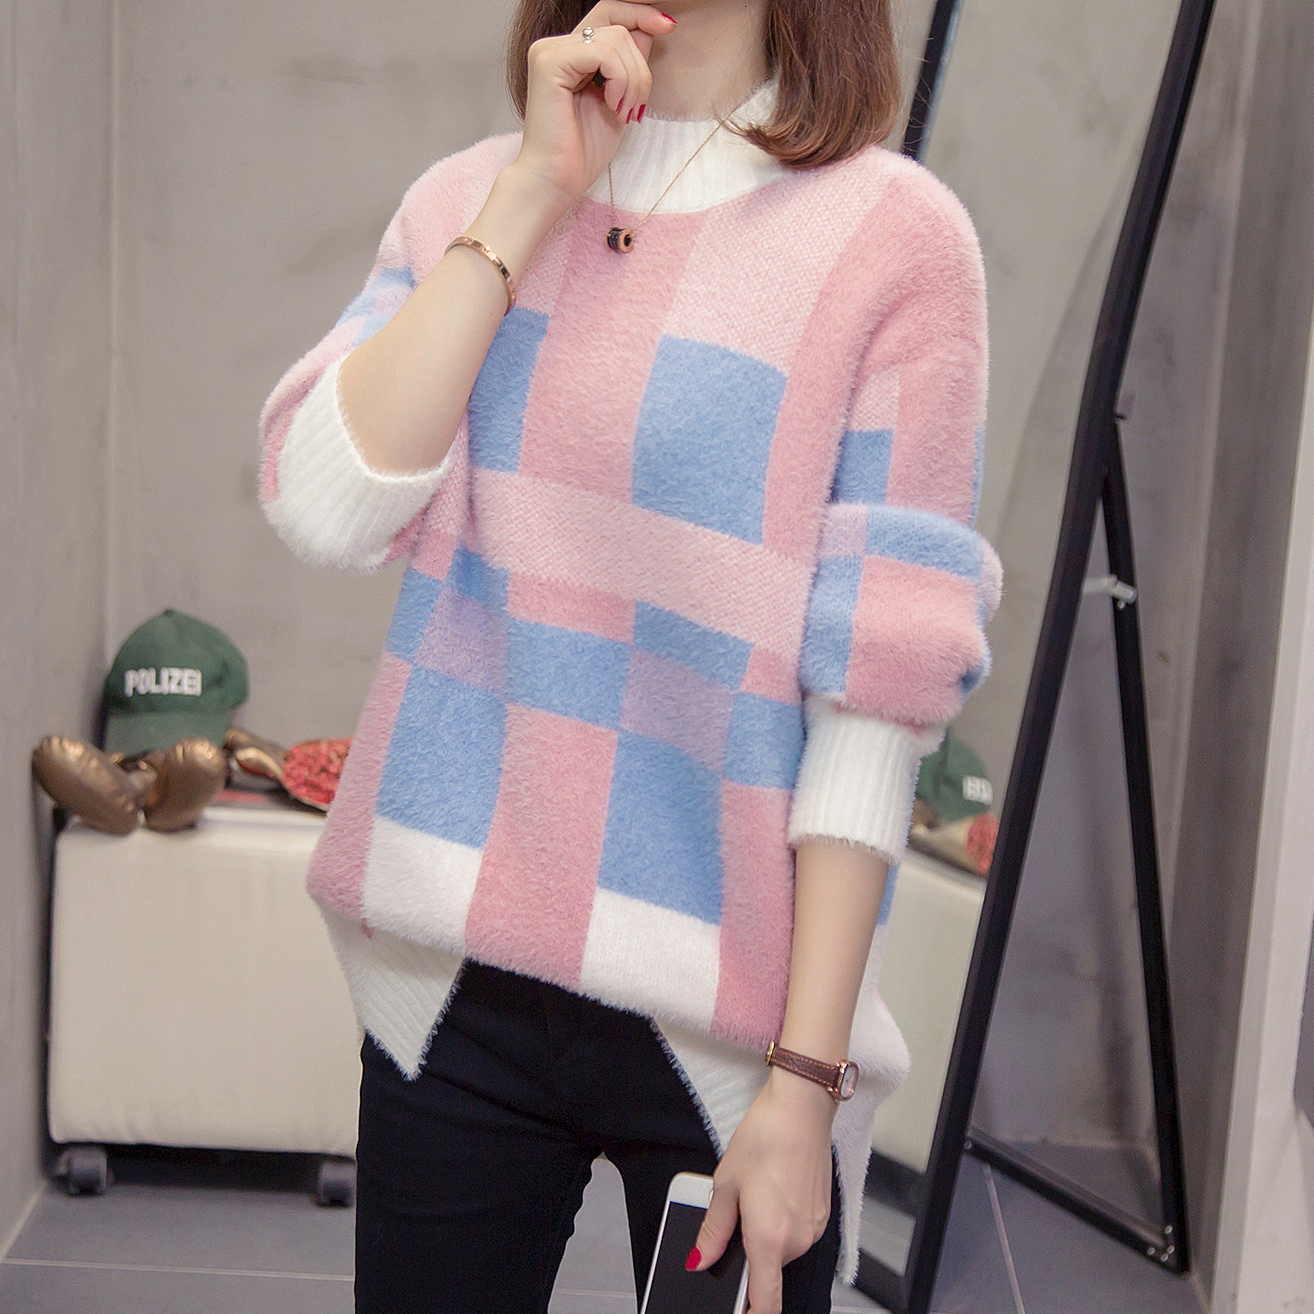 Nkandby Plus Size Cashmere Pullovers For Women Autumn Winter Stylish Loose Plaid Fuzzy Sweaters Oversize Warm Knitting Jumpers